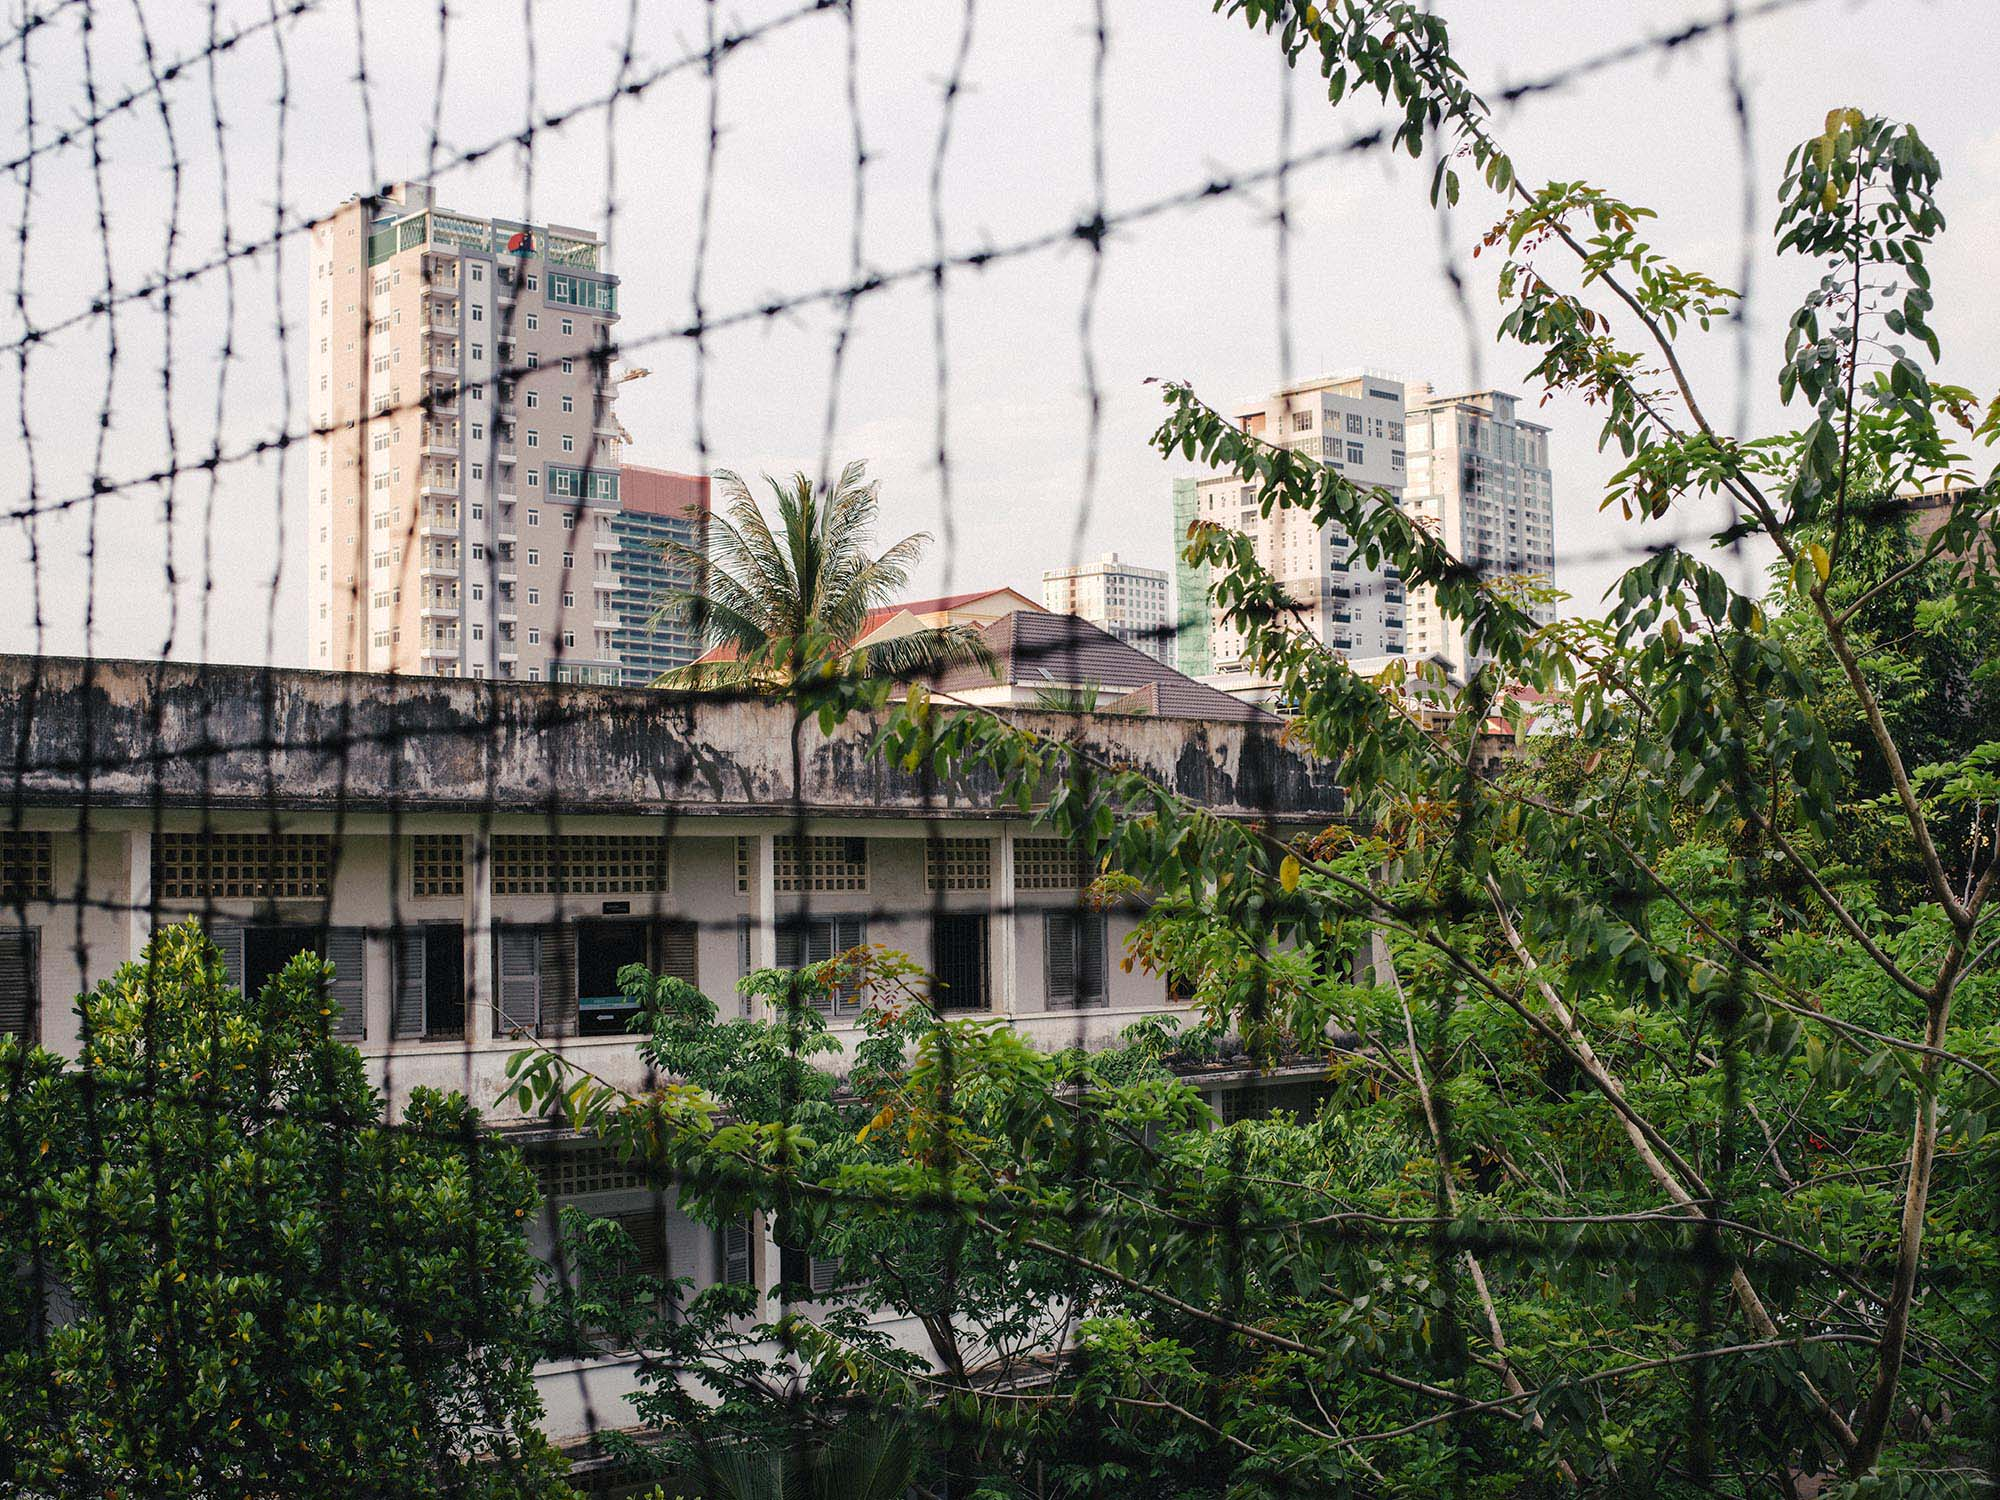 View from one of the buildings of the S21 prison in Phnom Penh.